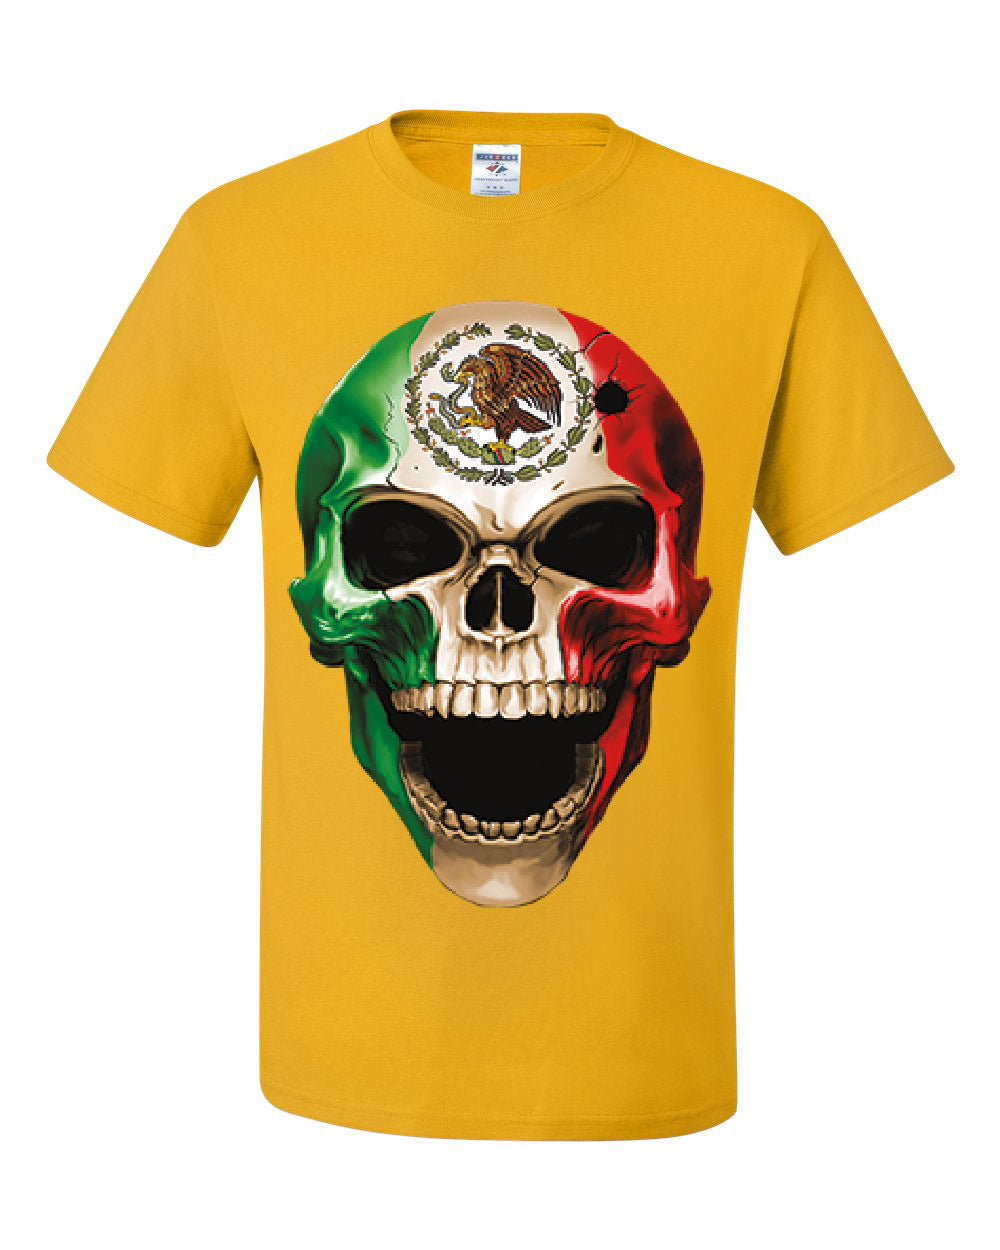 Skull Face Mexican Pride T Shirt Mexico Ethnic Golden Eagle Flag Tee